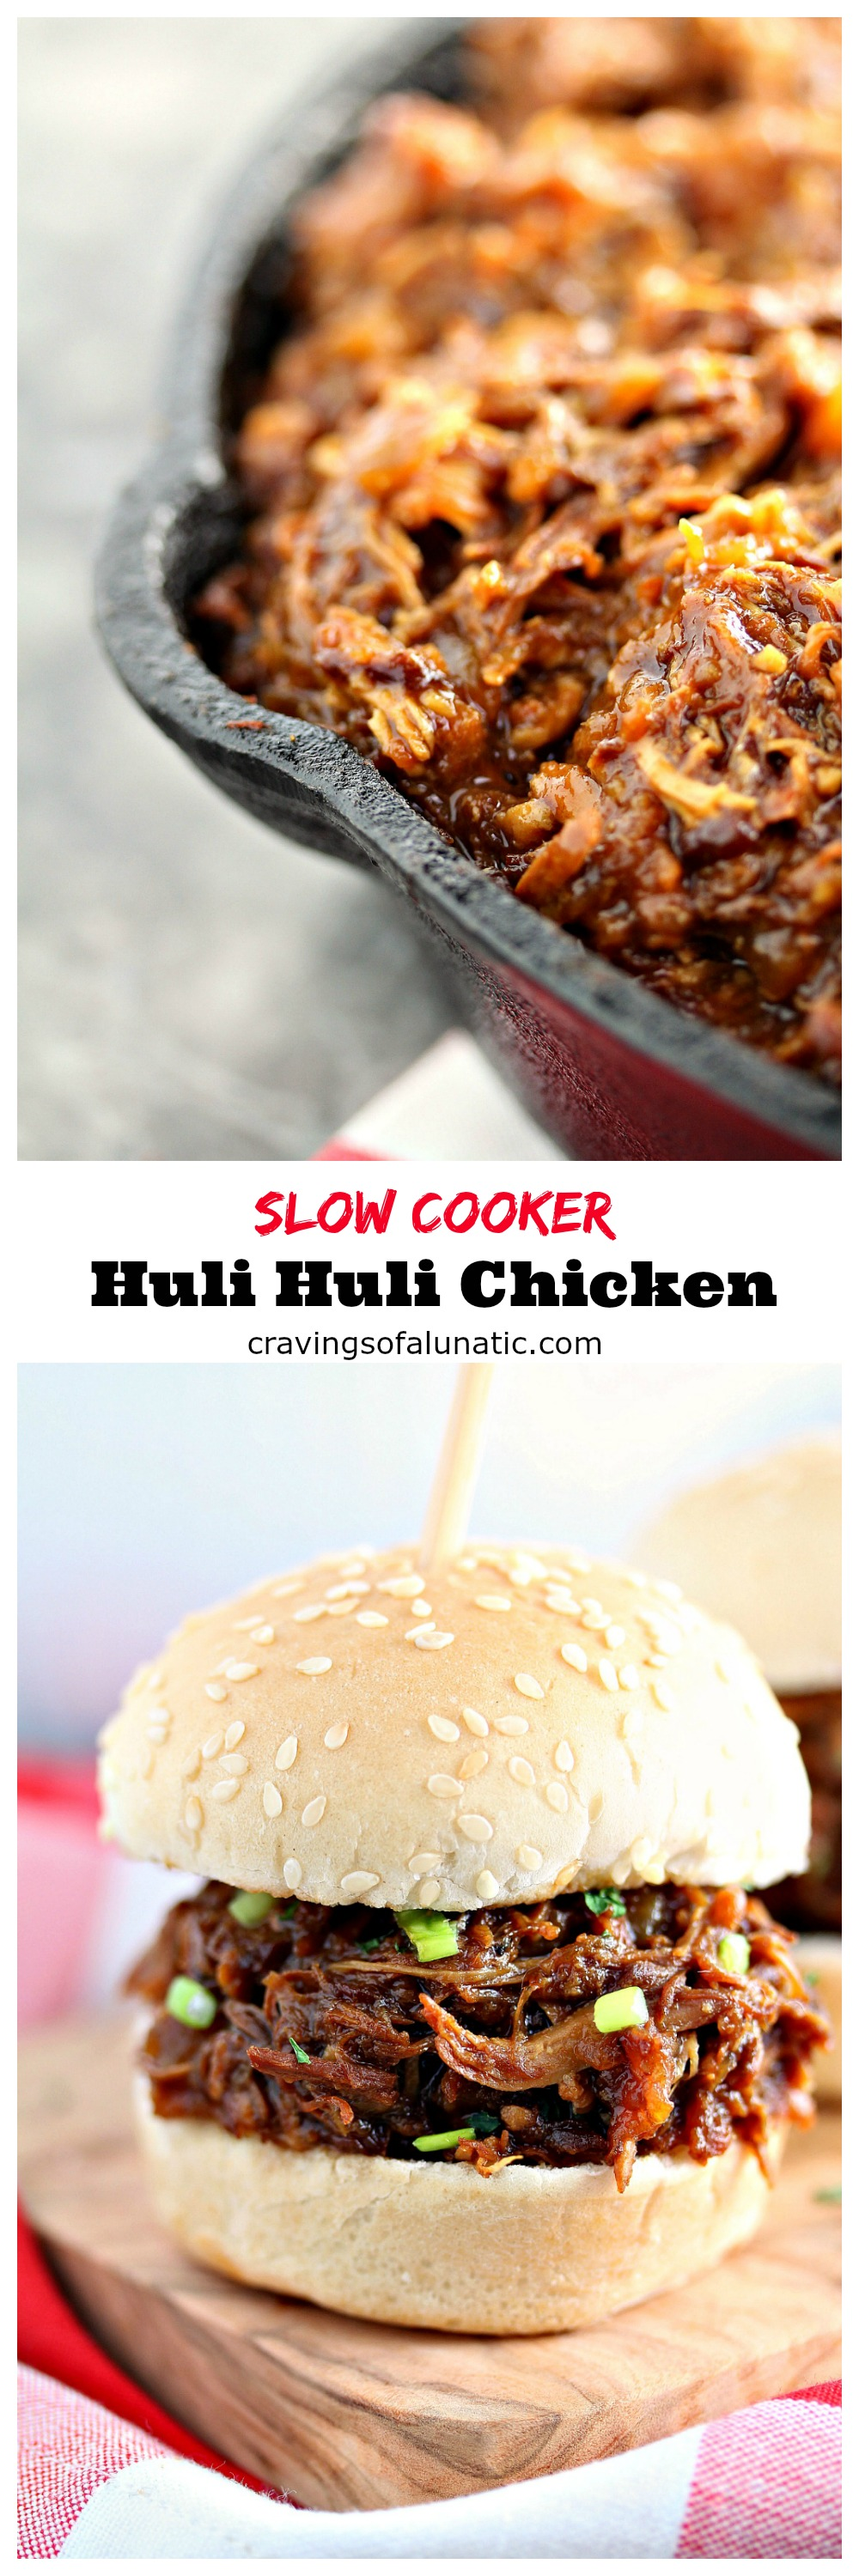 This Slow Cooker Huli Huli Chickenis the ultimate set it and forget it recipe. The flavour is so intense that it's hard to believe howeasy this is to make. This will become your family's favourite chicken recipe!